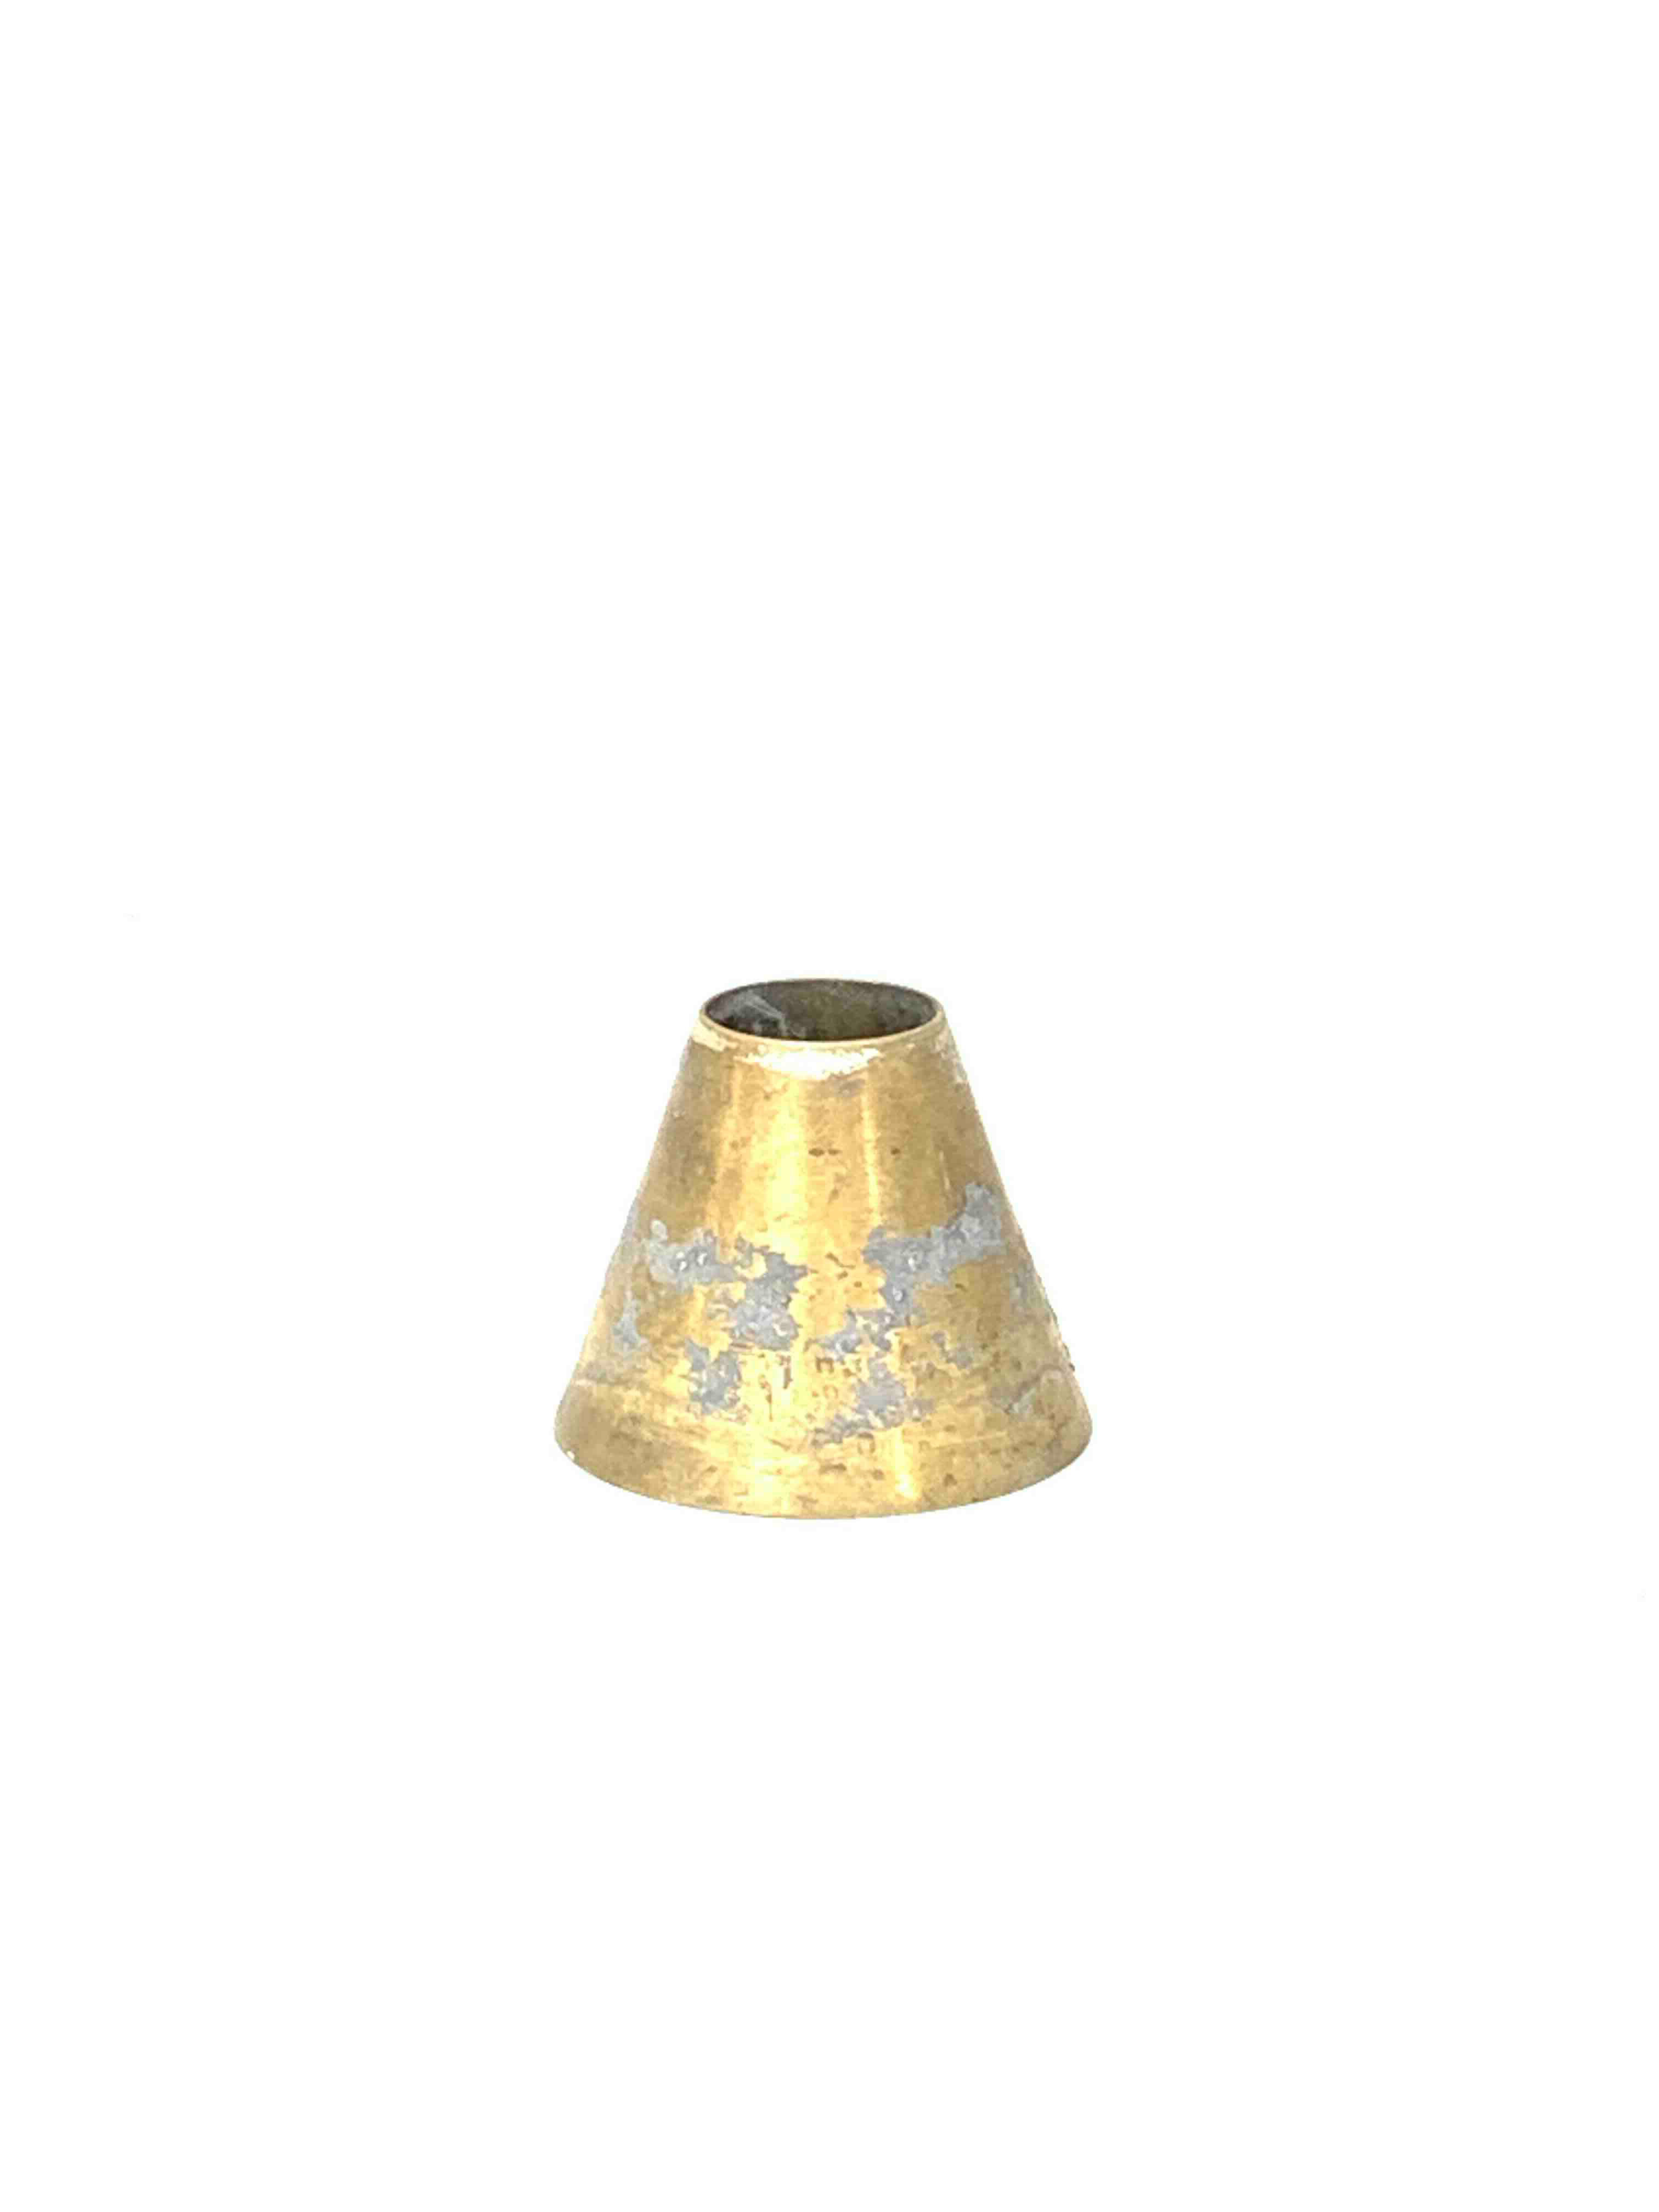 Conical Mold